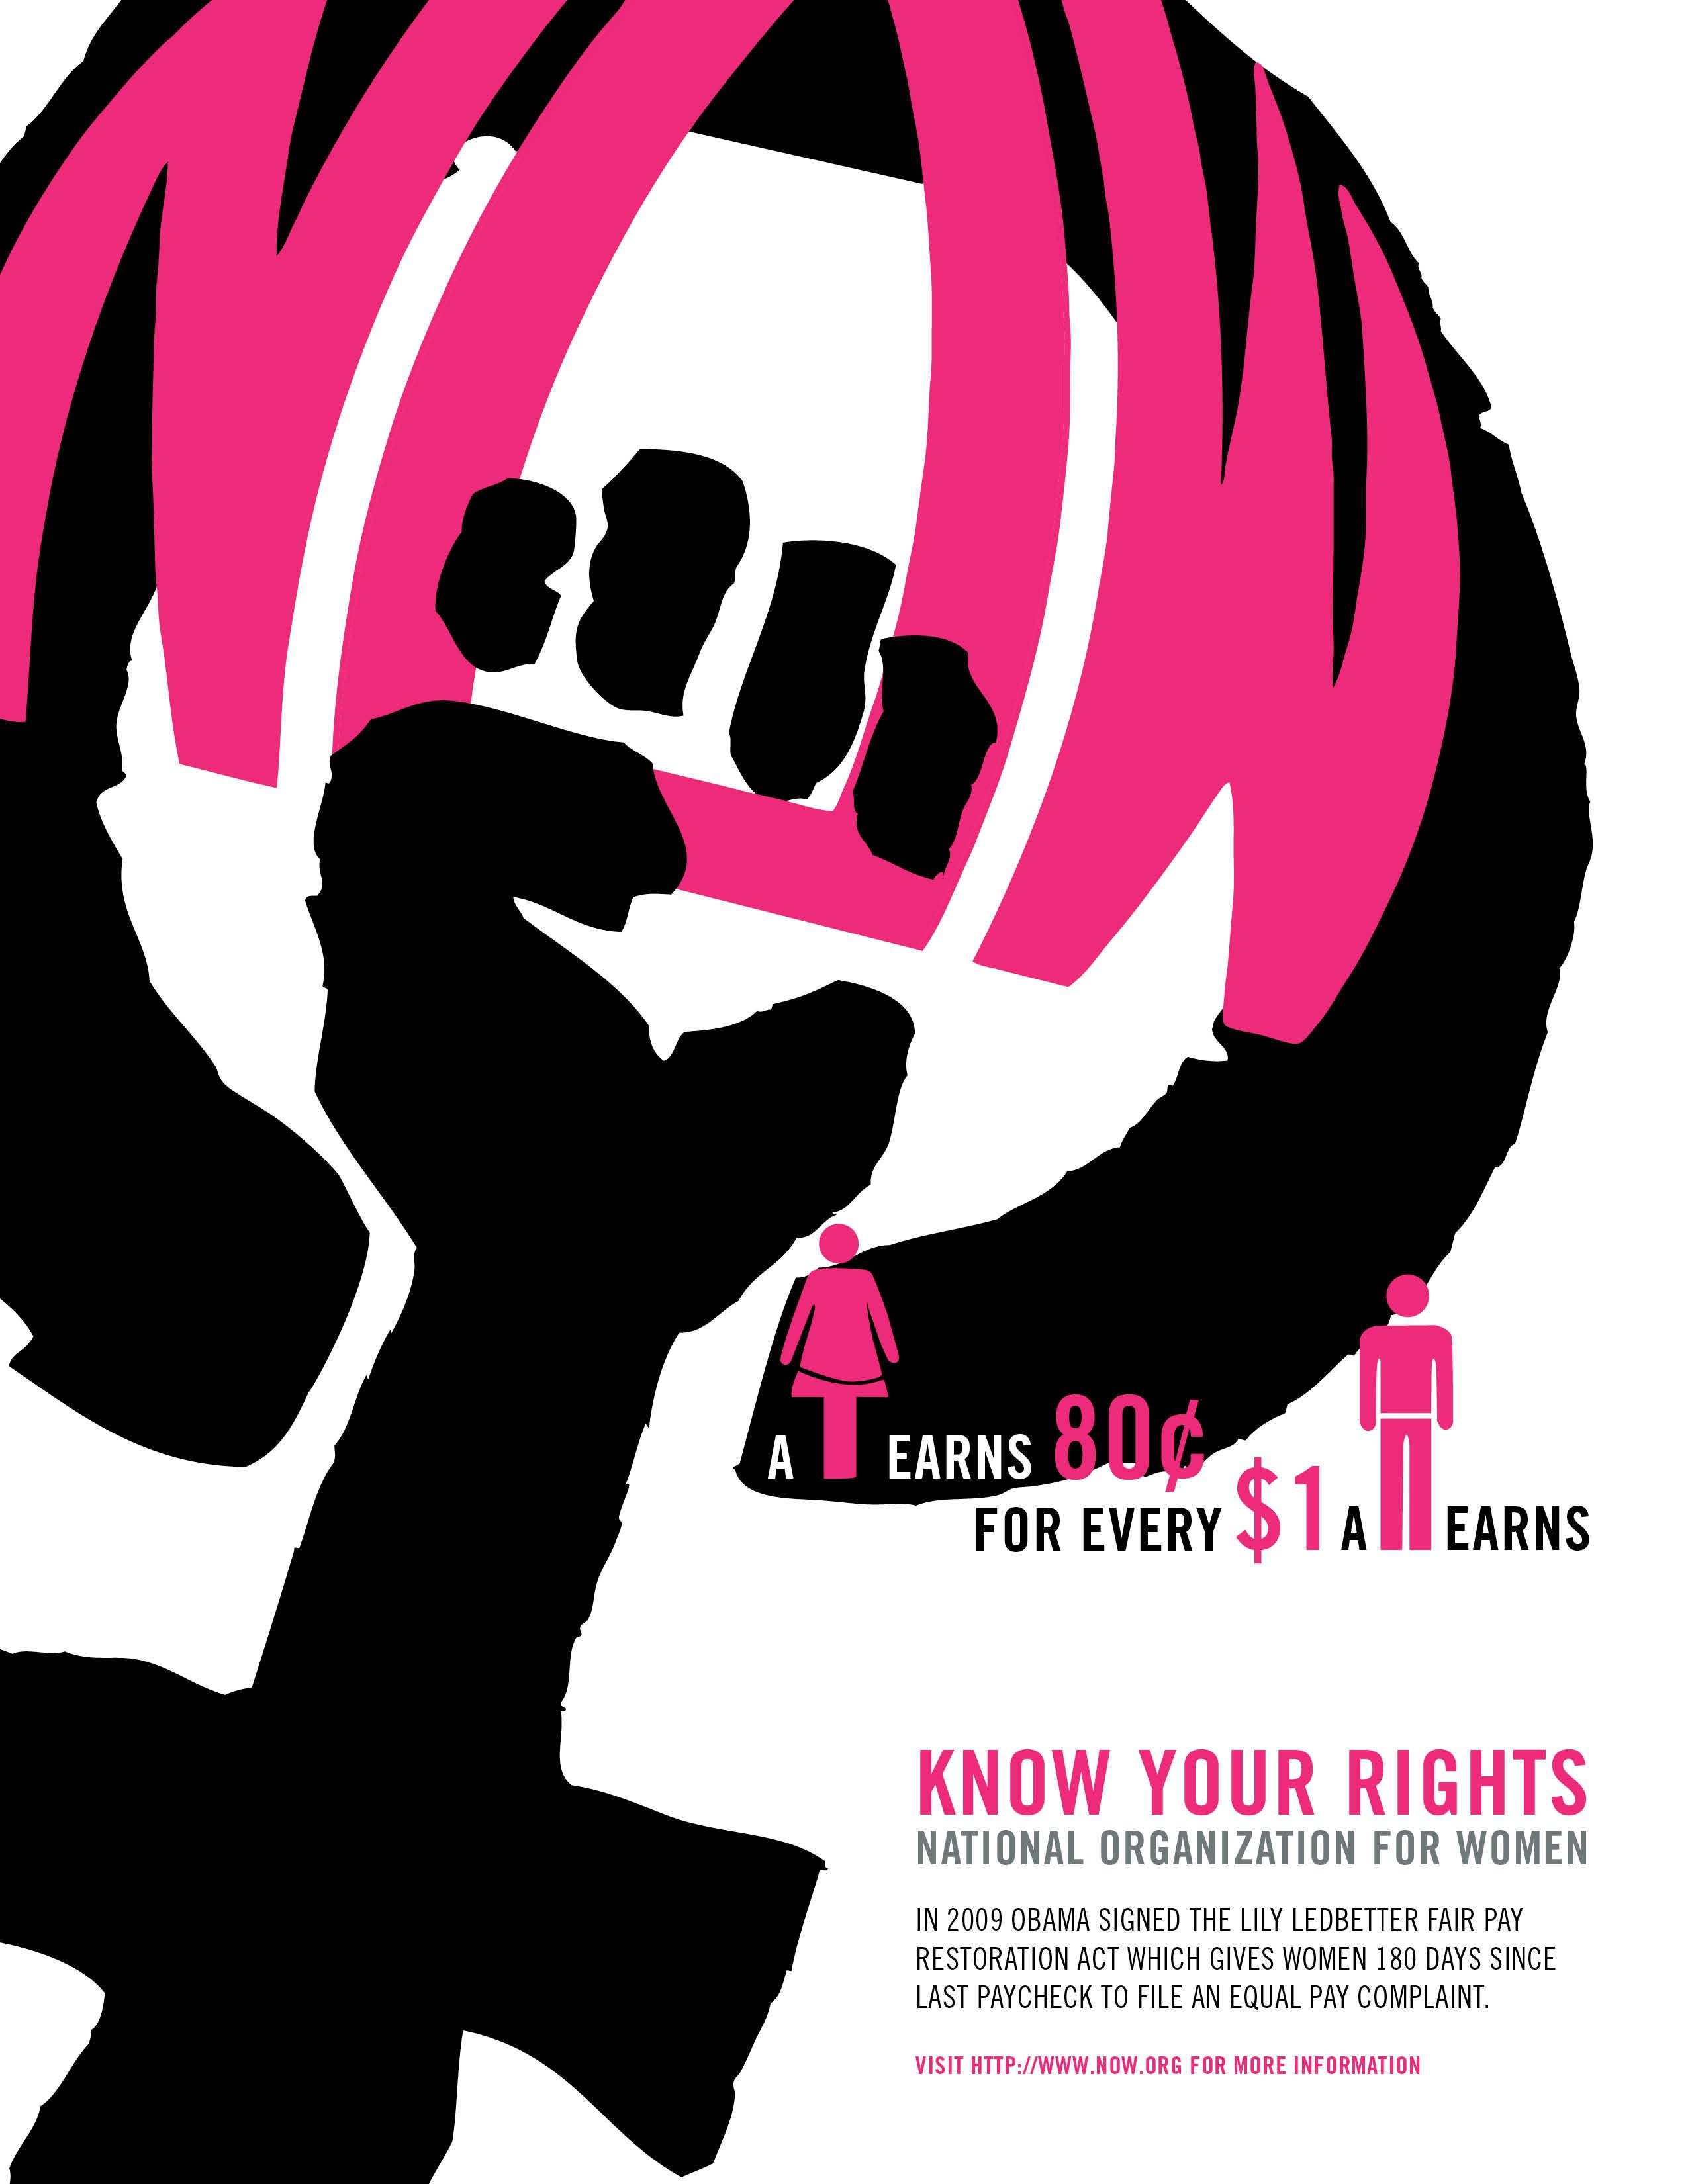 NOW Ad 1 - Women's rights campaign targeted toward young women in ...